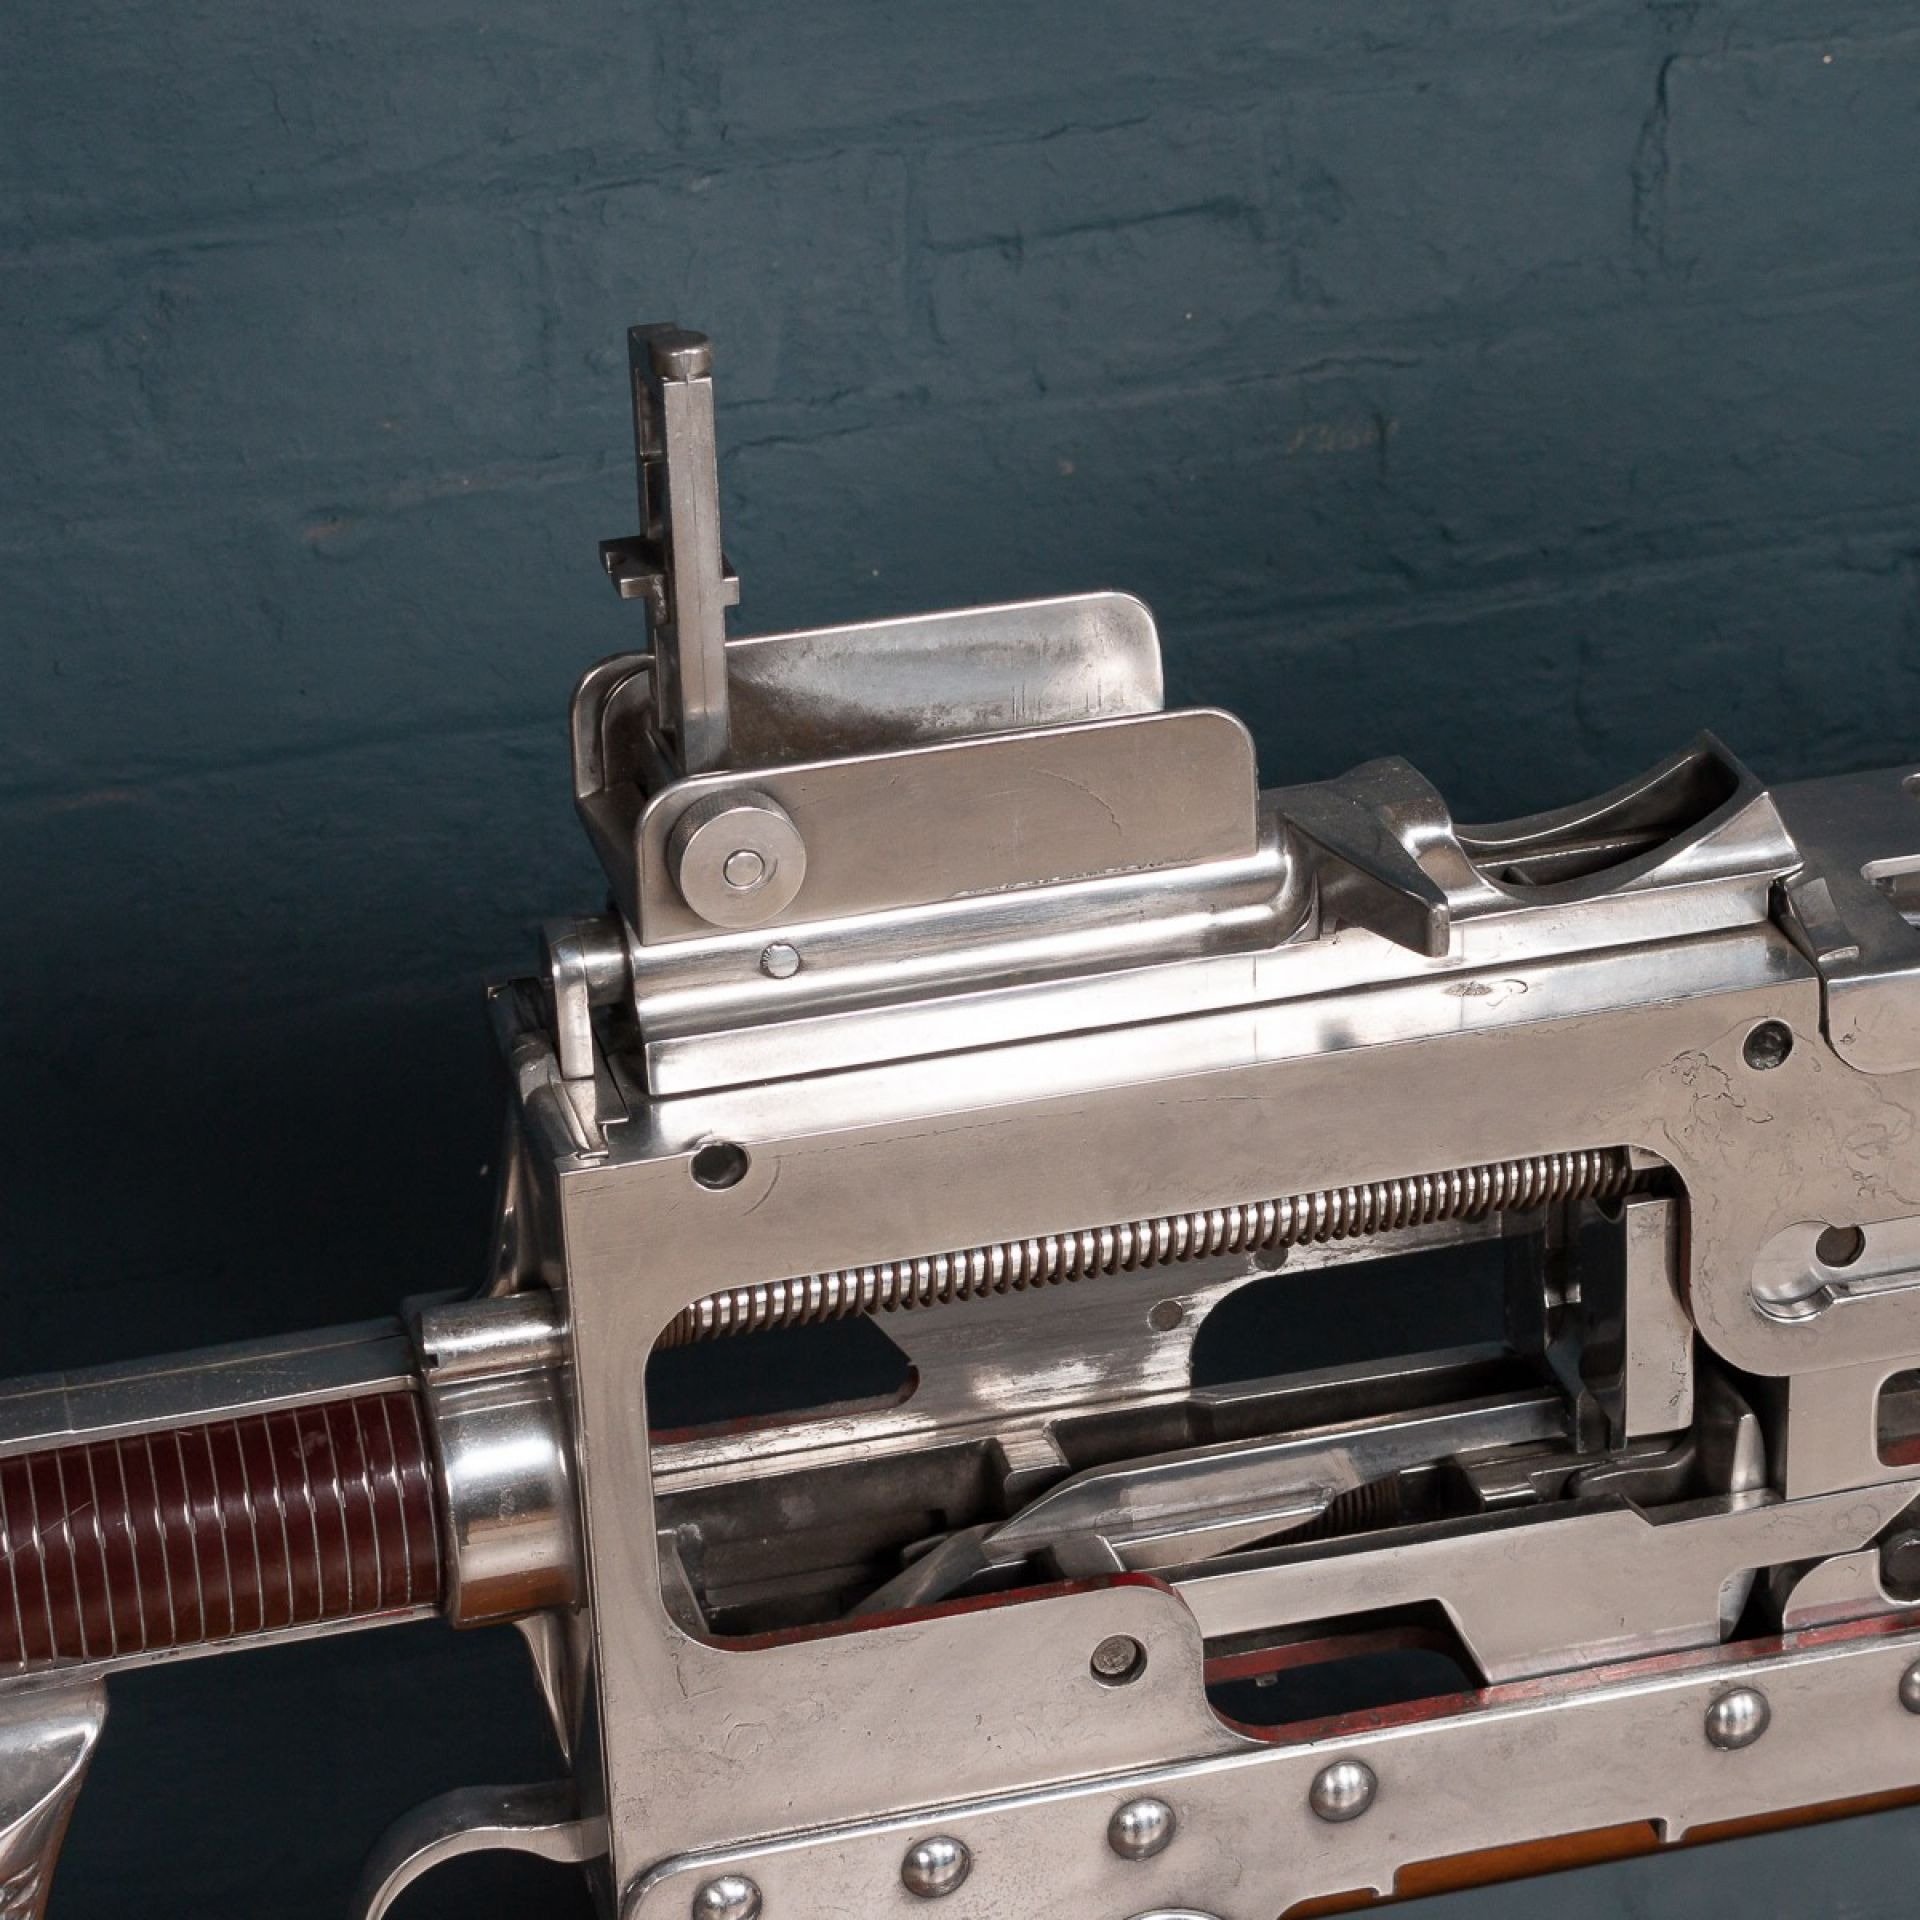 MID 20th CENTURY MASSIVE BROWNING TRAINING GUN, USA